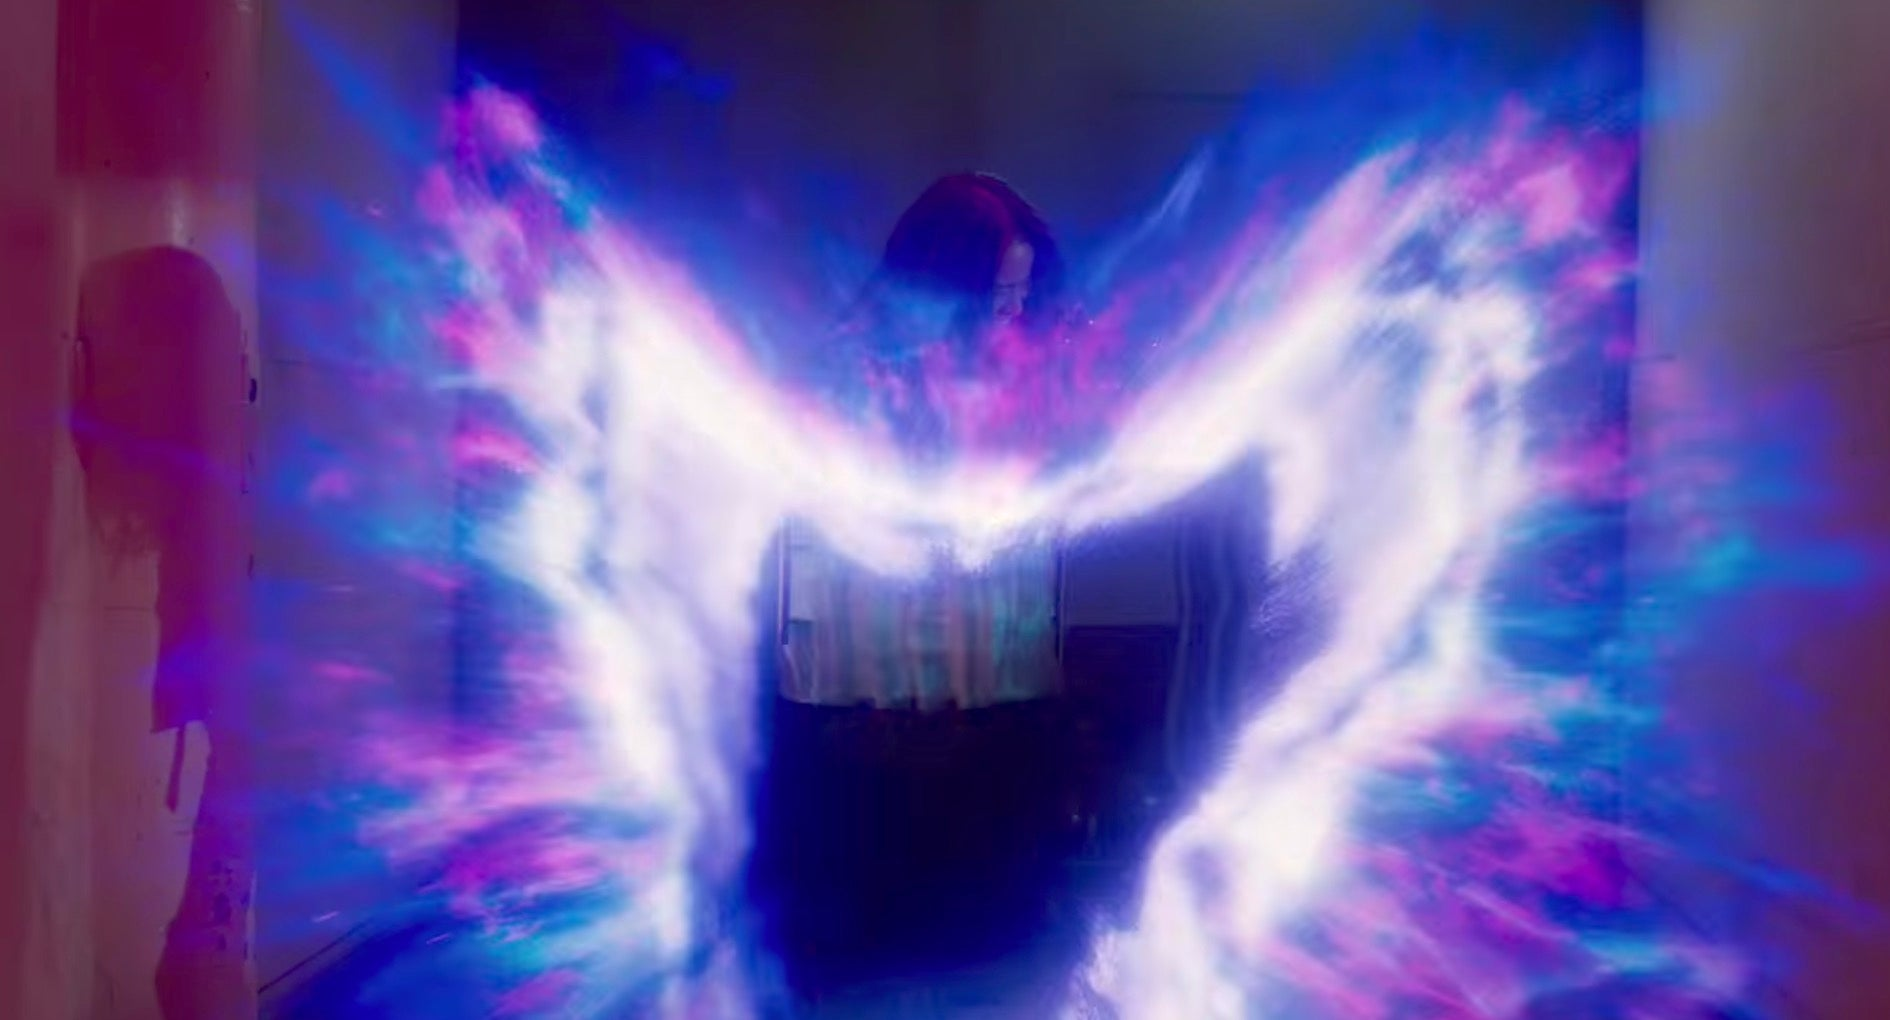 'X-Men' TV Show 'The Gifted' Ordered To Series; First Teaser